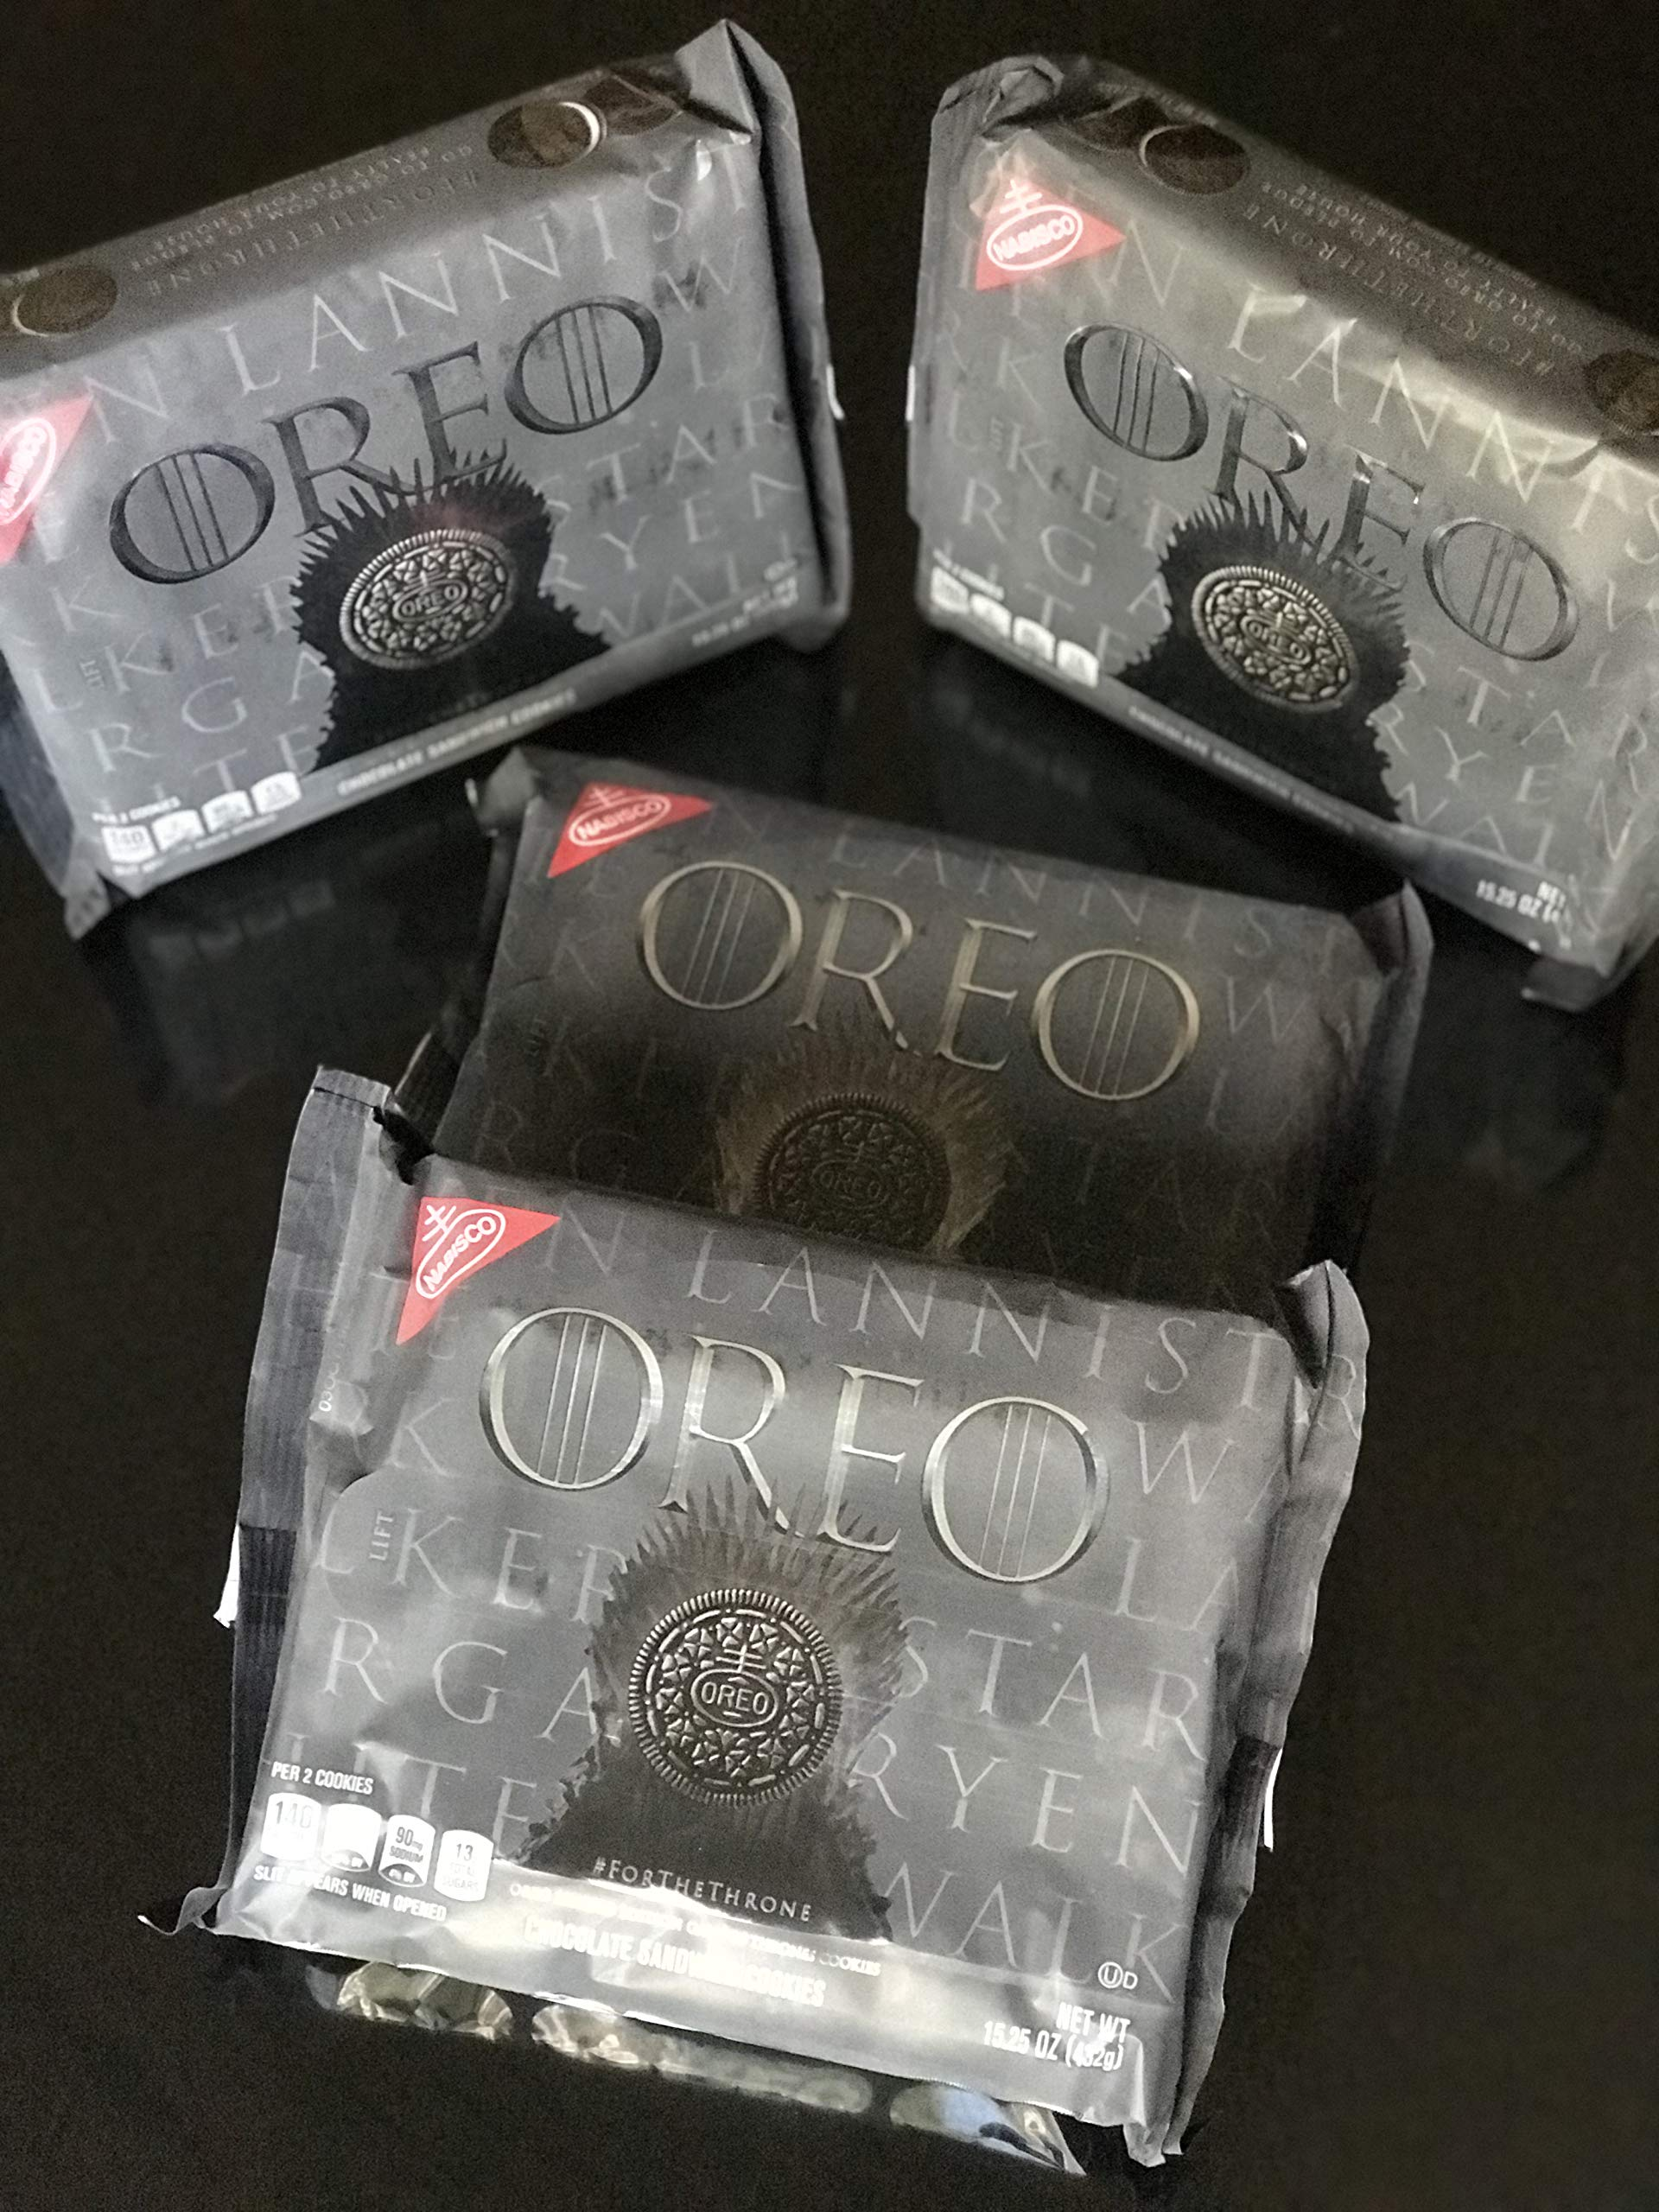 OREO Limited Edition Game of Thrones Themed Classic Chocolate Sandwich Cookies, 15.25 oz. - 2 pack